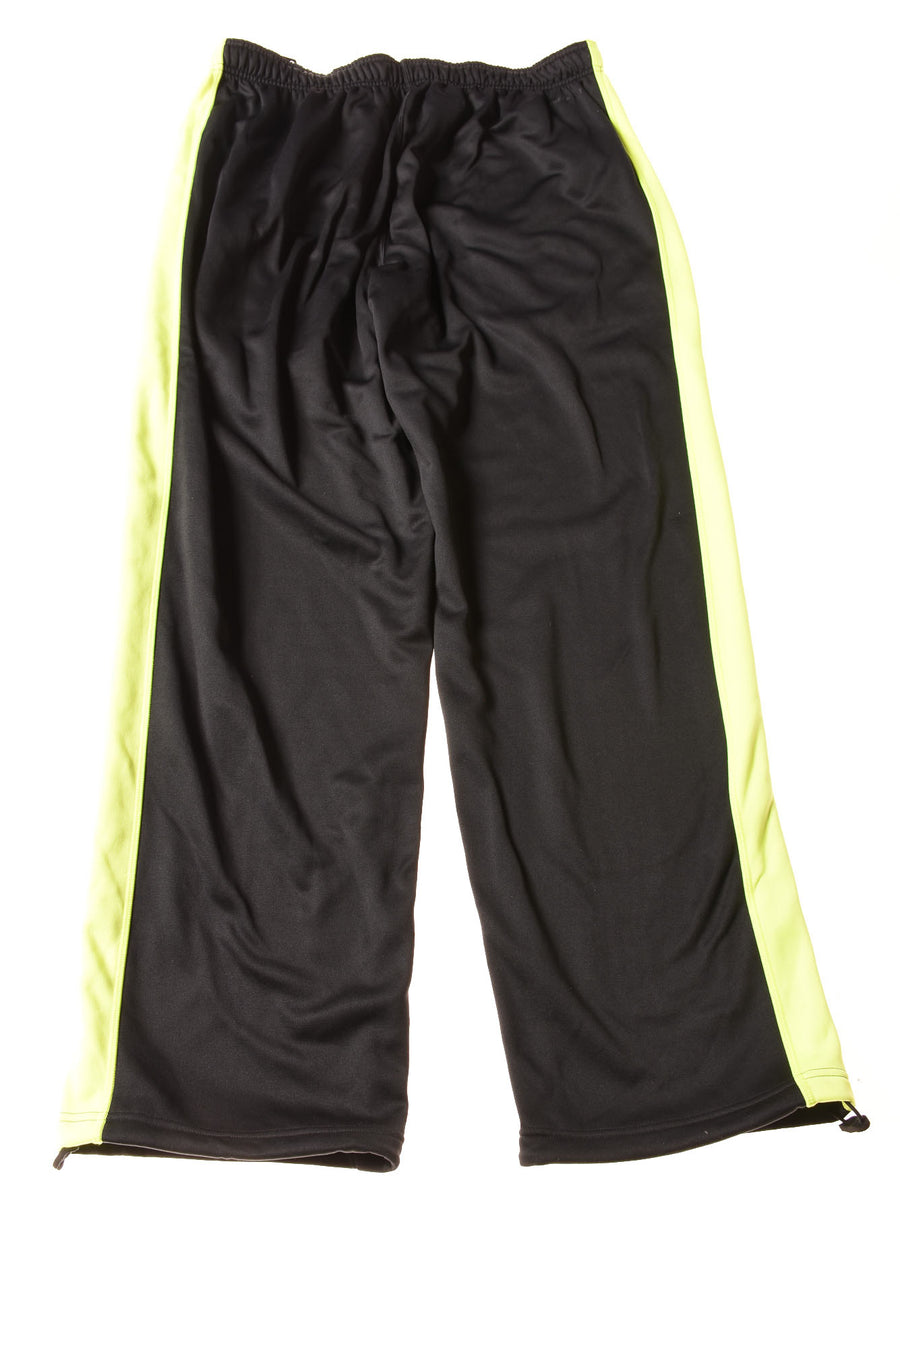 NEW Nike Men's Pants XX-Large Black & Neon Green